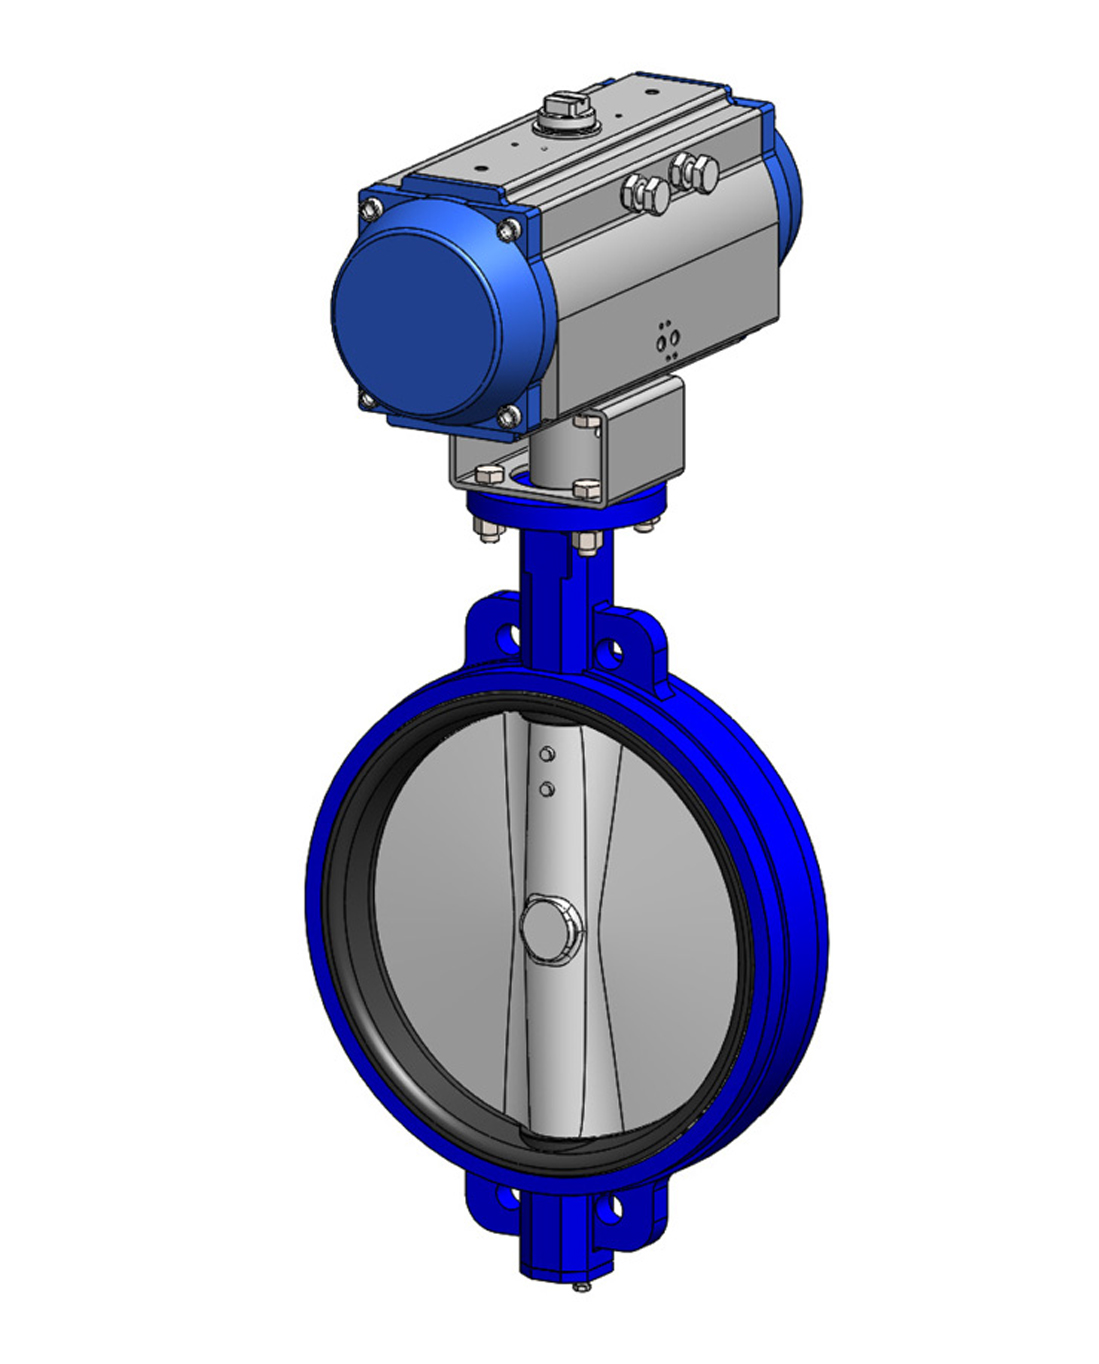 Wafer type butterfly valve PN10 – ductile iron body – stainless steel disc – single acting pneumatic operator